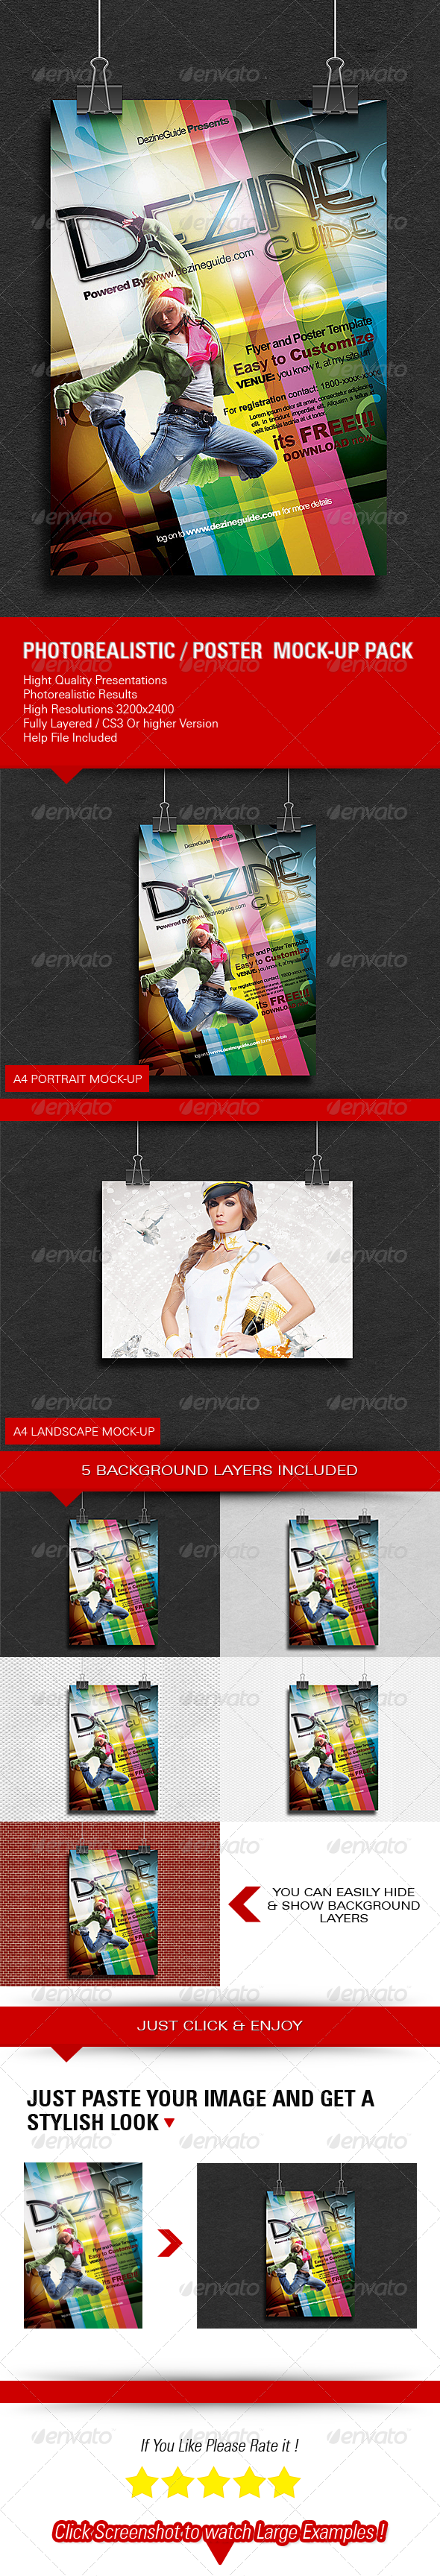 GraphicRiver Photorealistic Poster Mock-up Pack 5927343